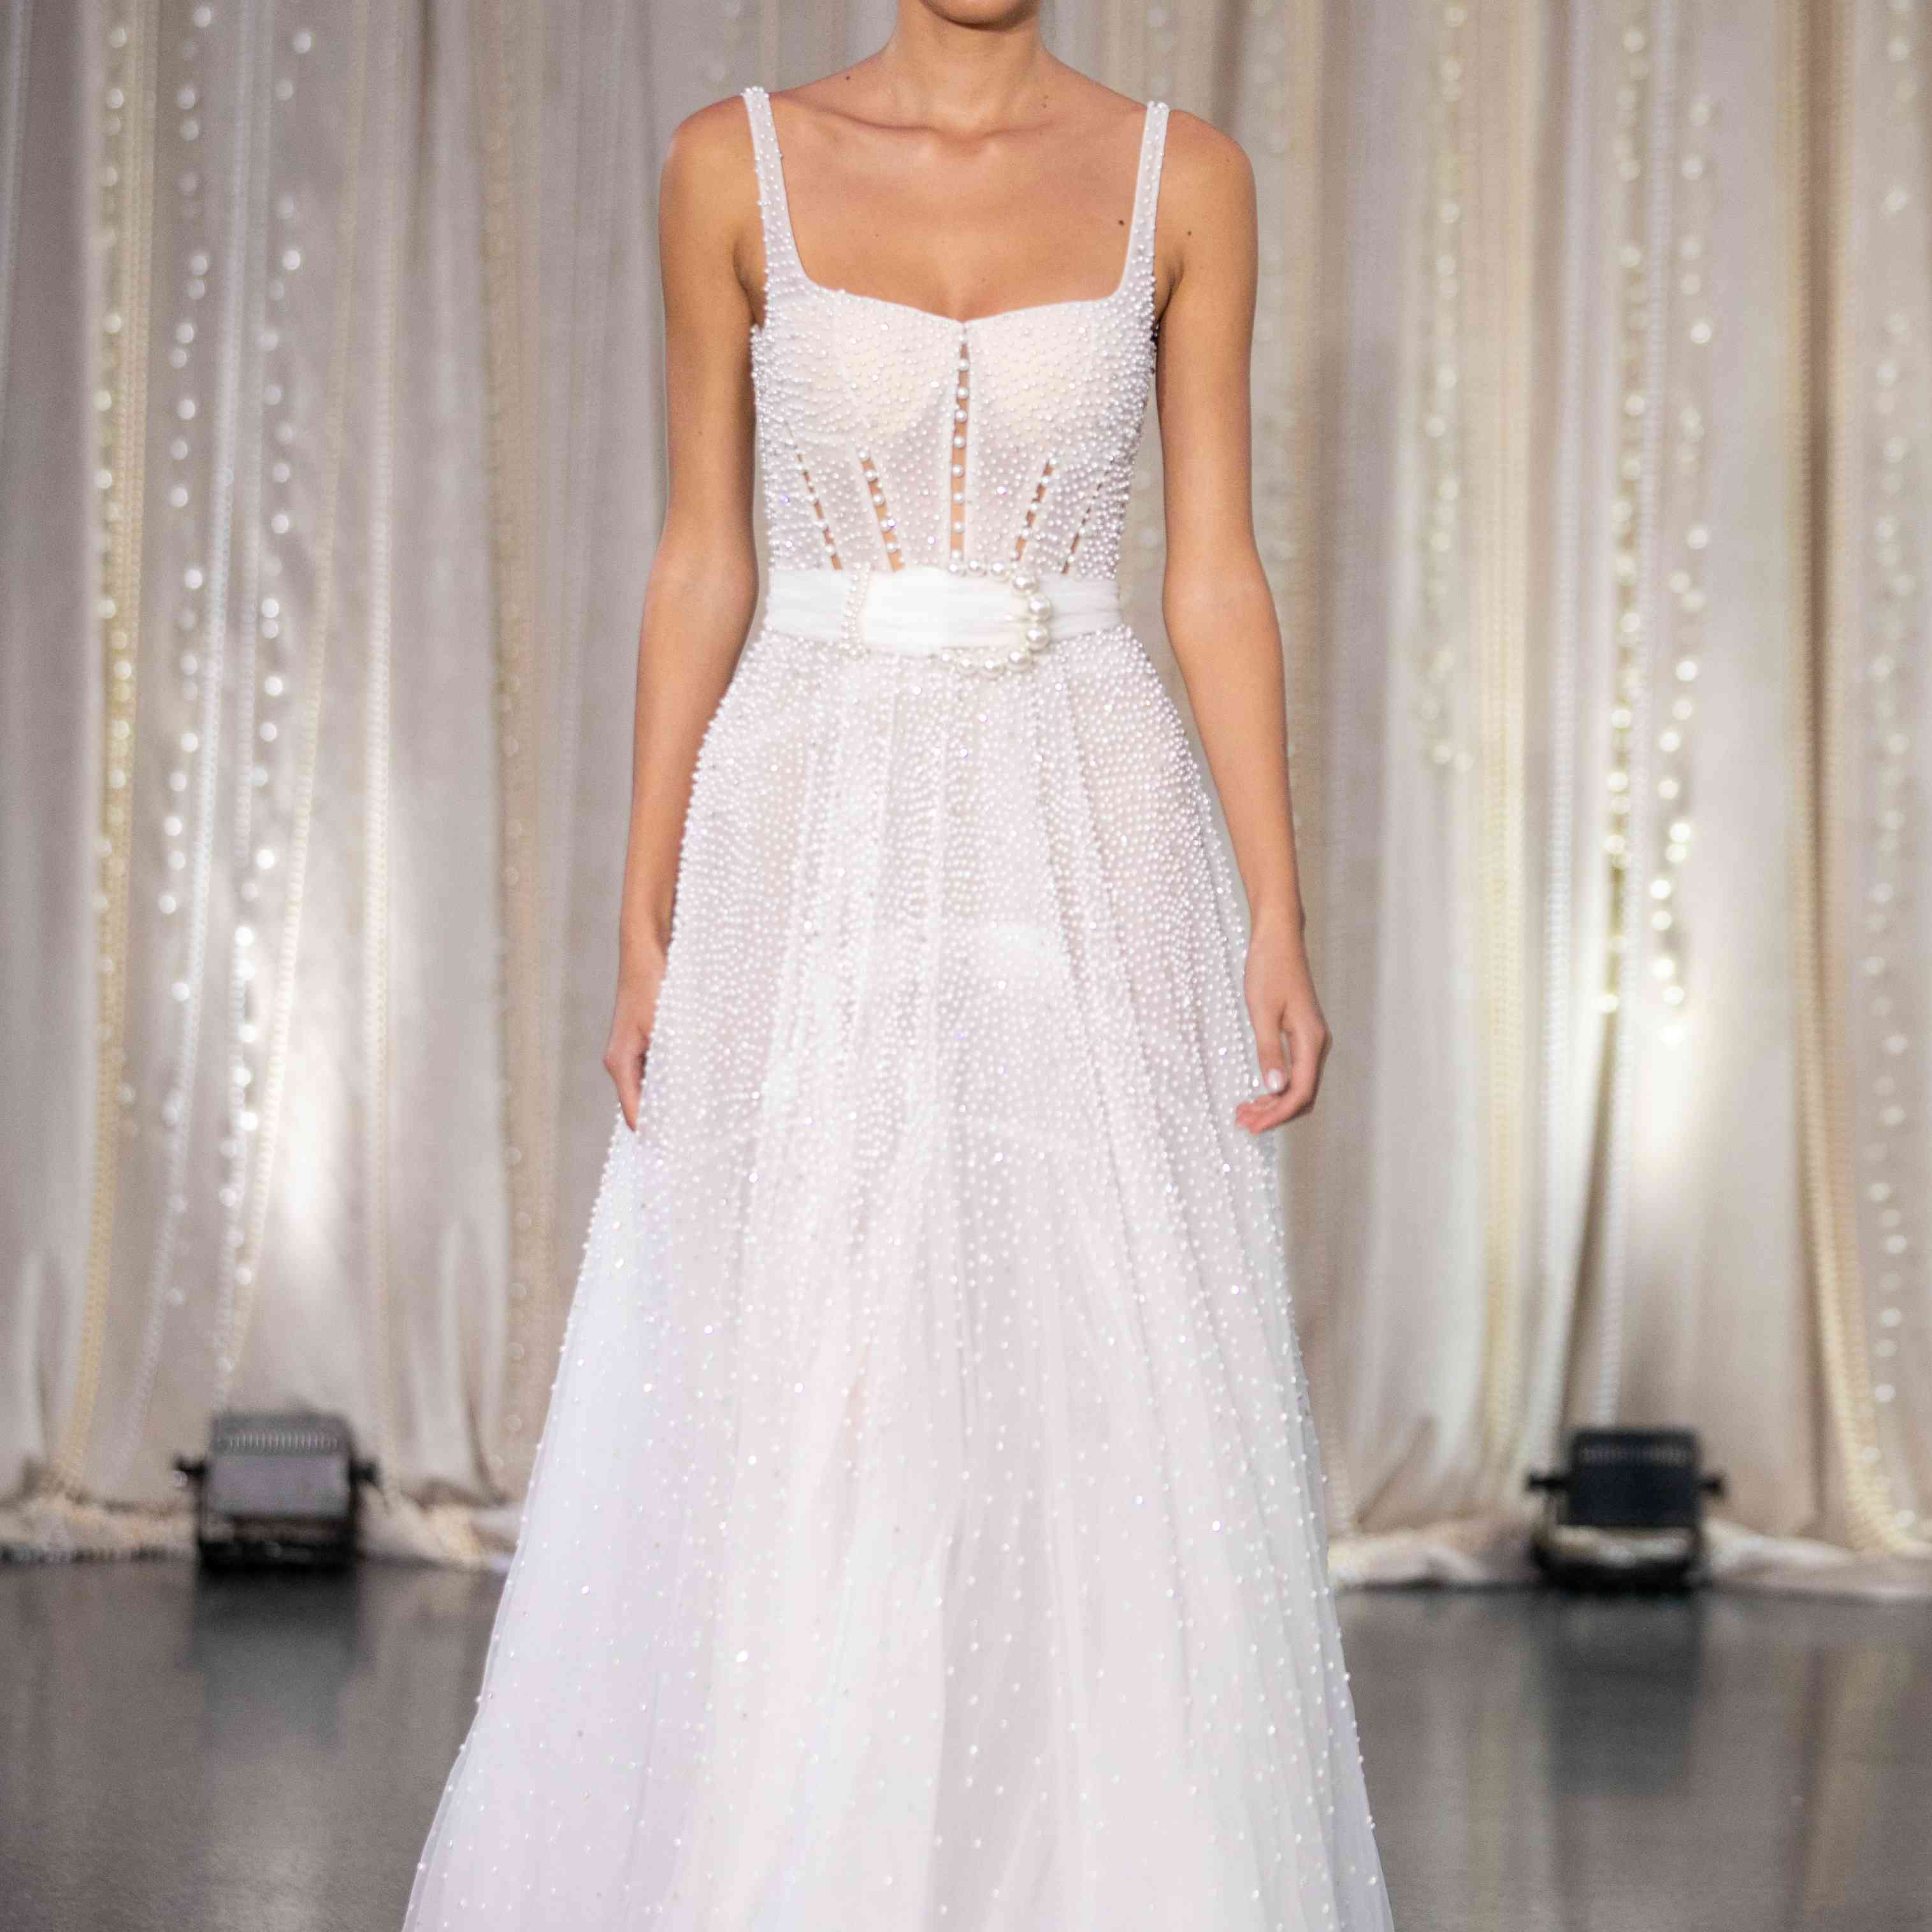 Model in sleeveless A-line wedding dress with pearls